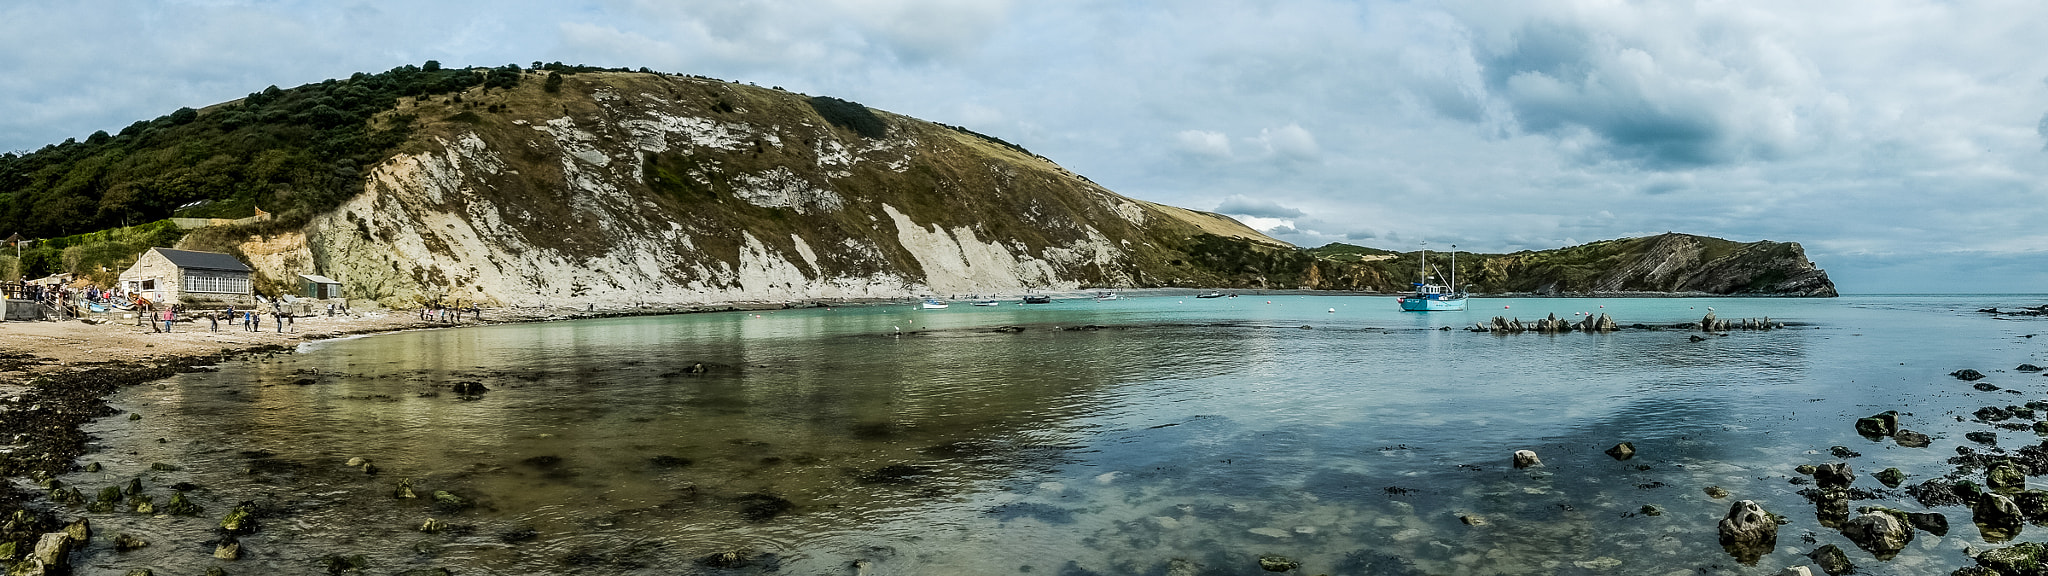 Photograph Lulworth Too by Guy Swarbrick on 500px